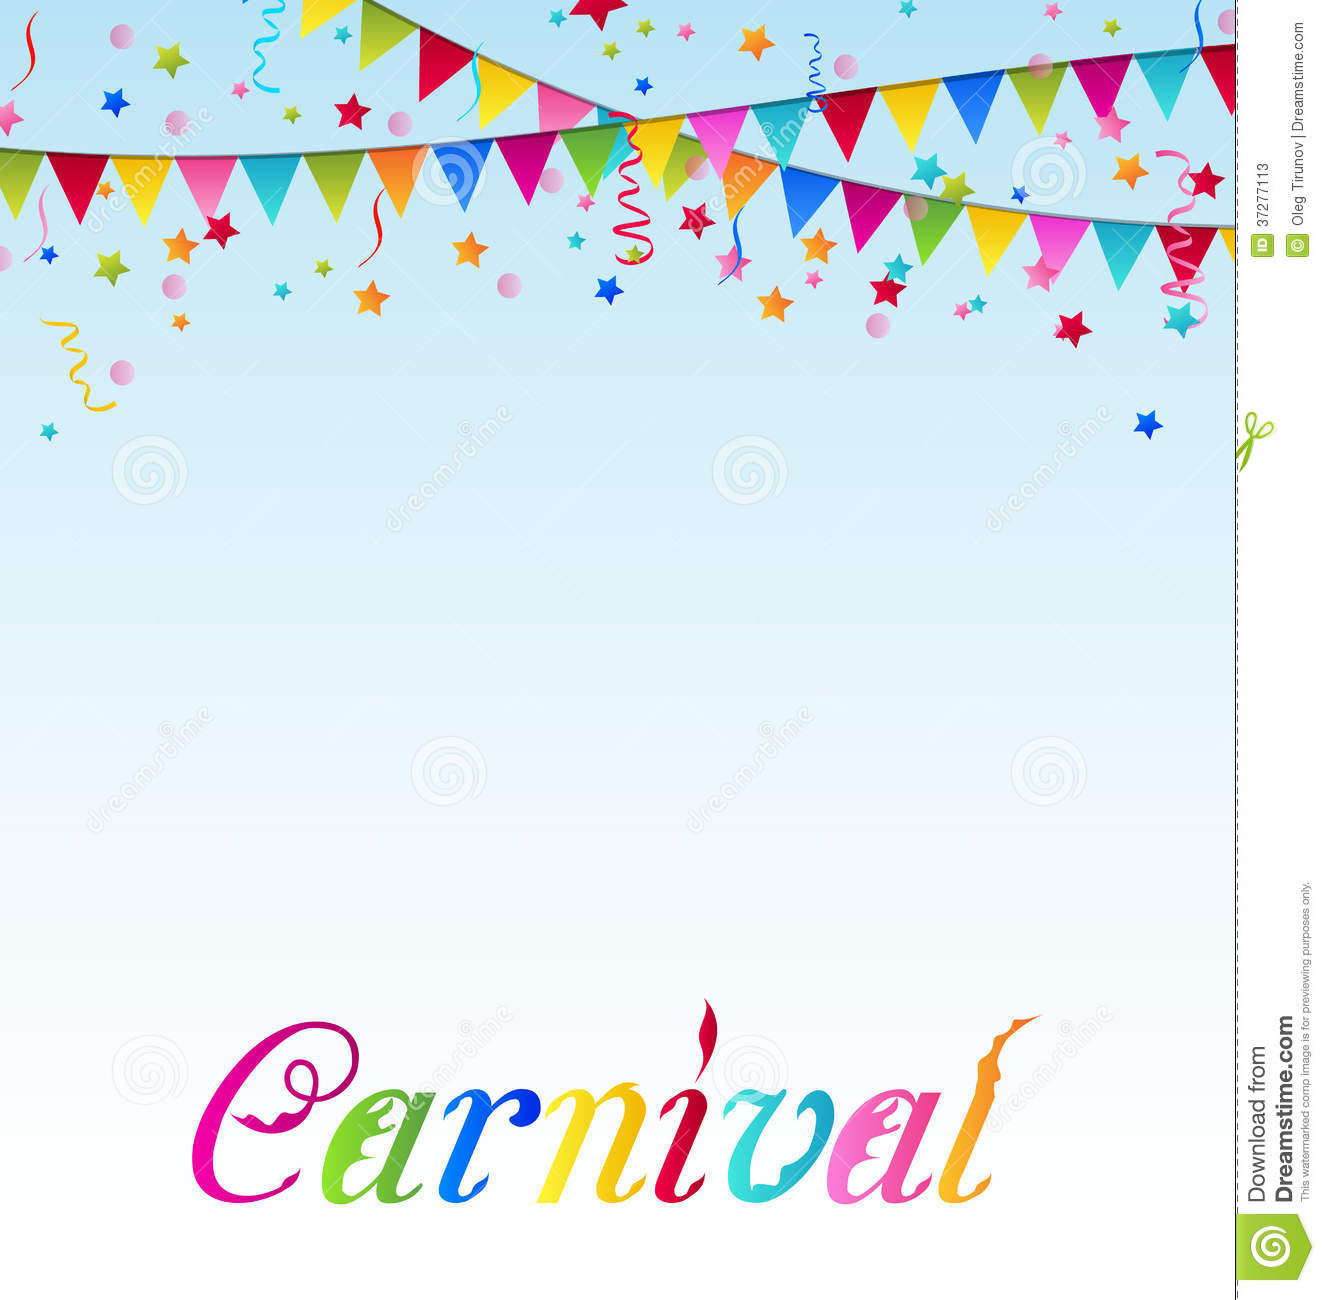 Carnival Background With Flags, Confetti, Text Stock Photos - Image ...